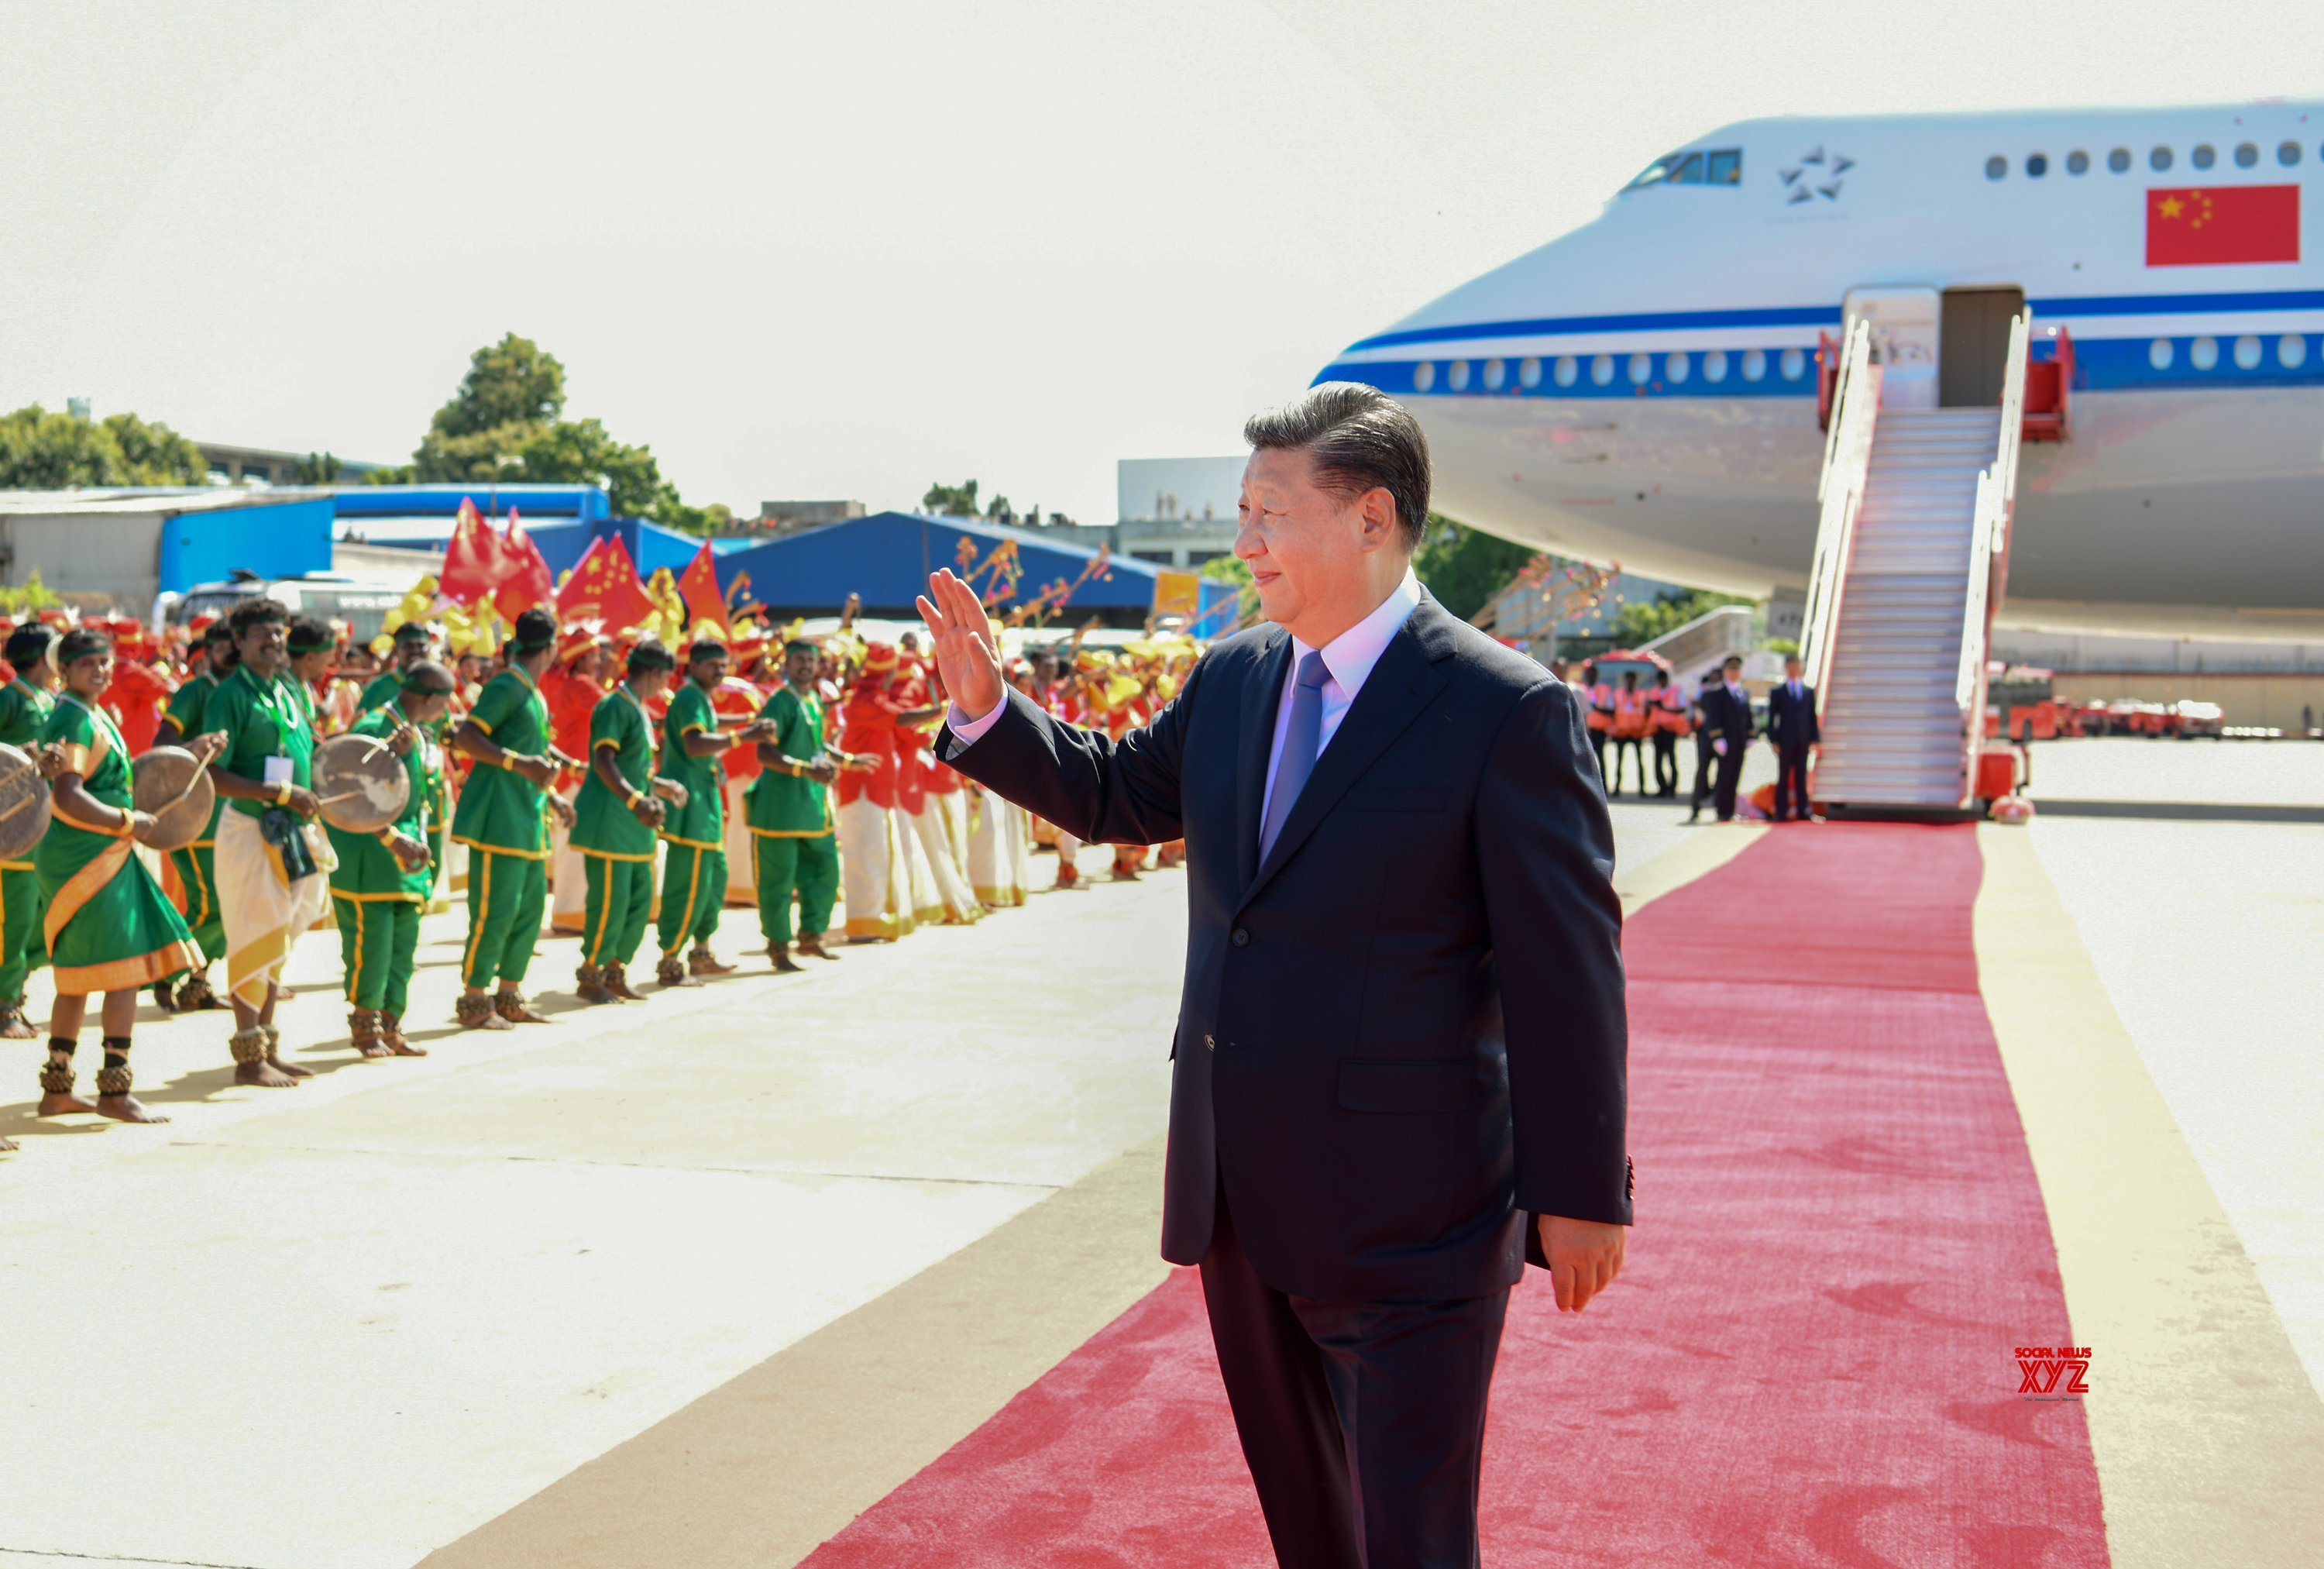 Chennai: Xi Jinping arrives in India (Batch - 2) #Gallery